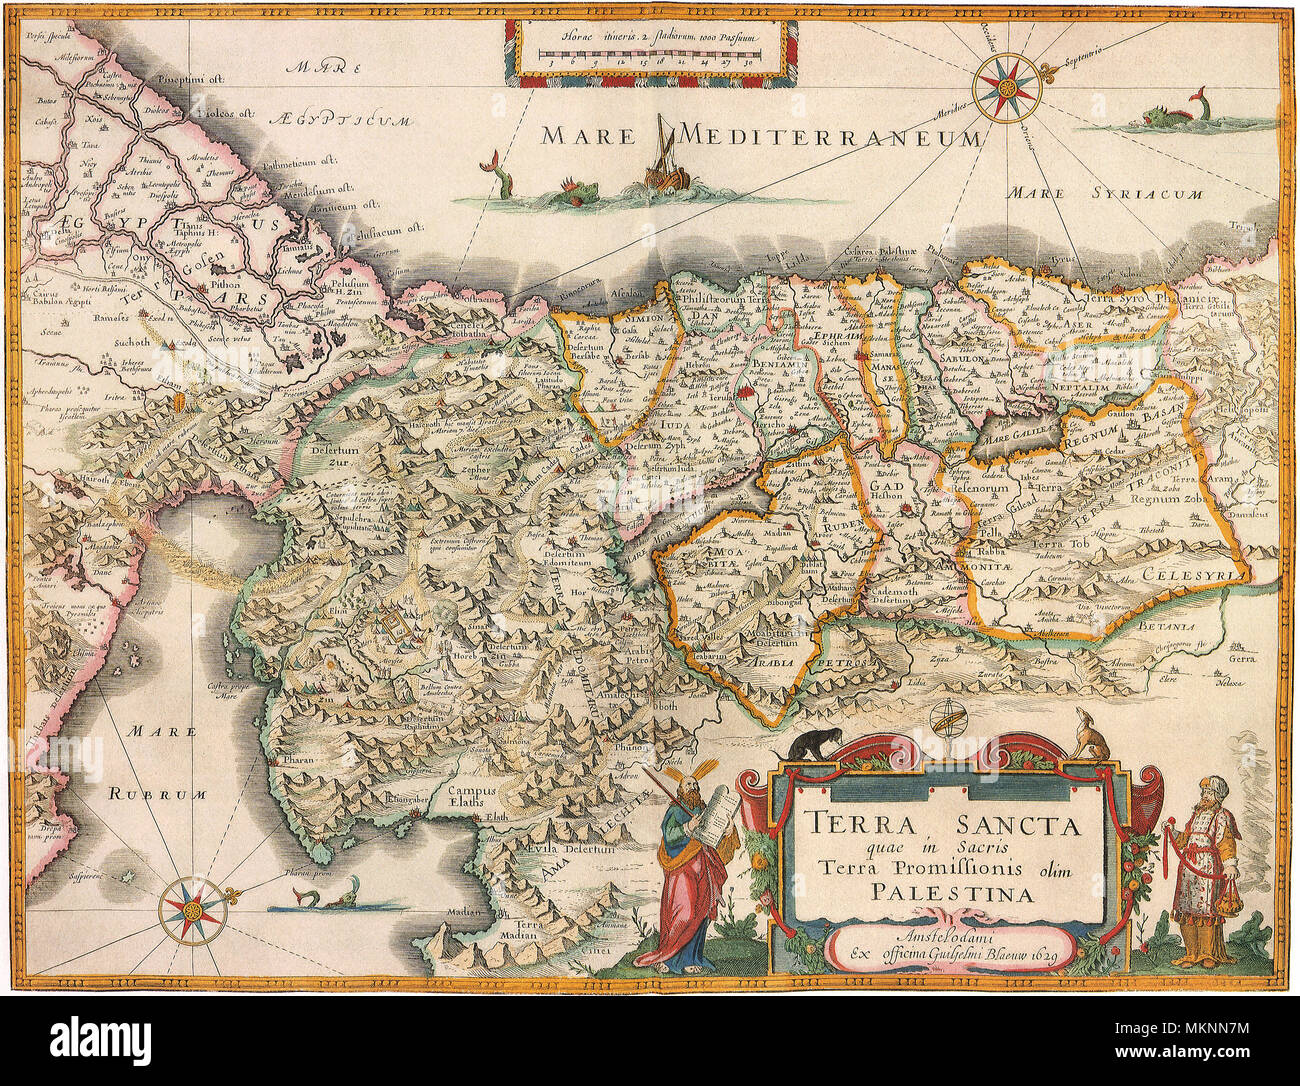 Map of Palestine 1629 - Stock Image